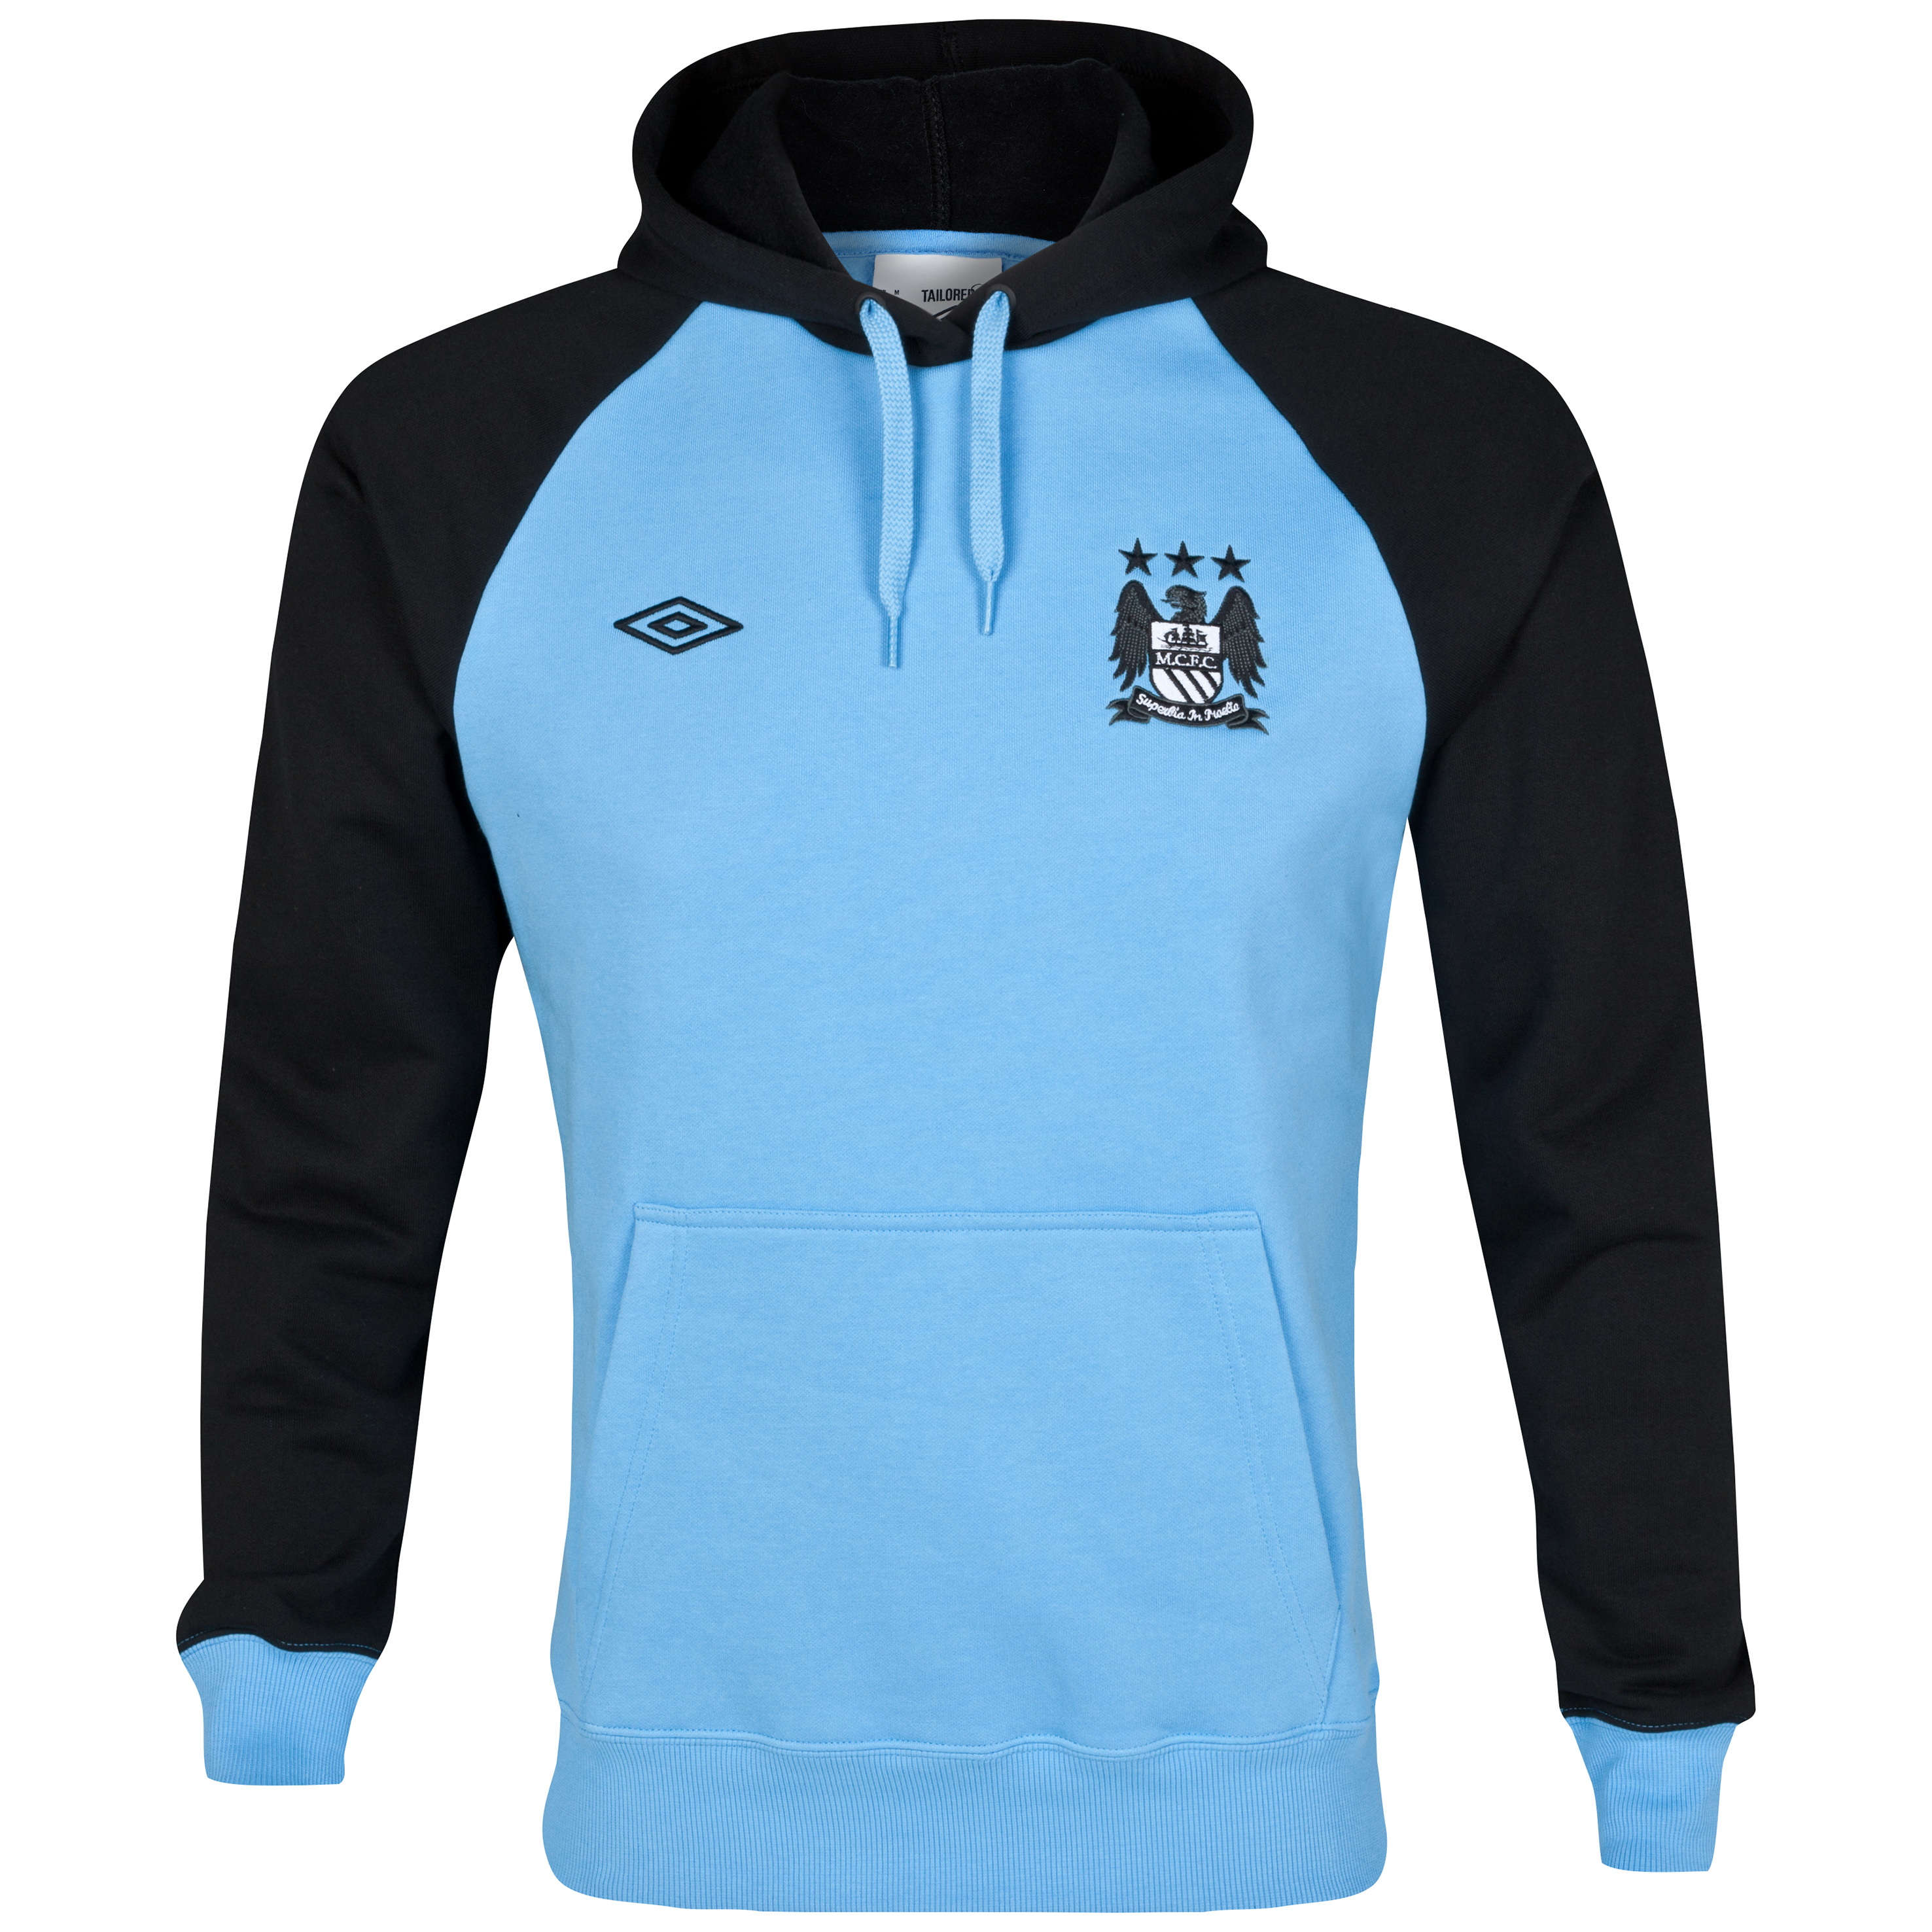 Manchester City WTC Hoody - Vista Blue/Black